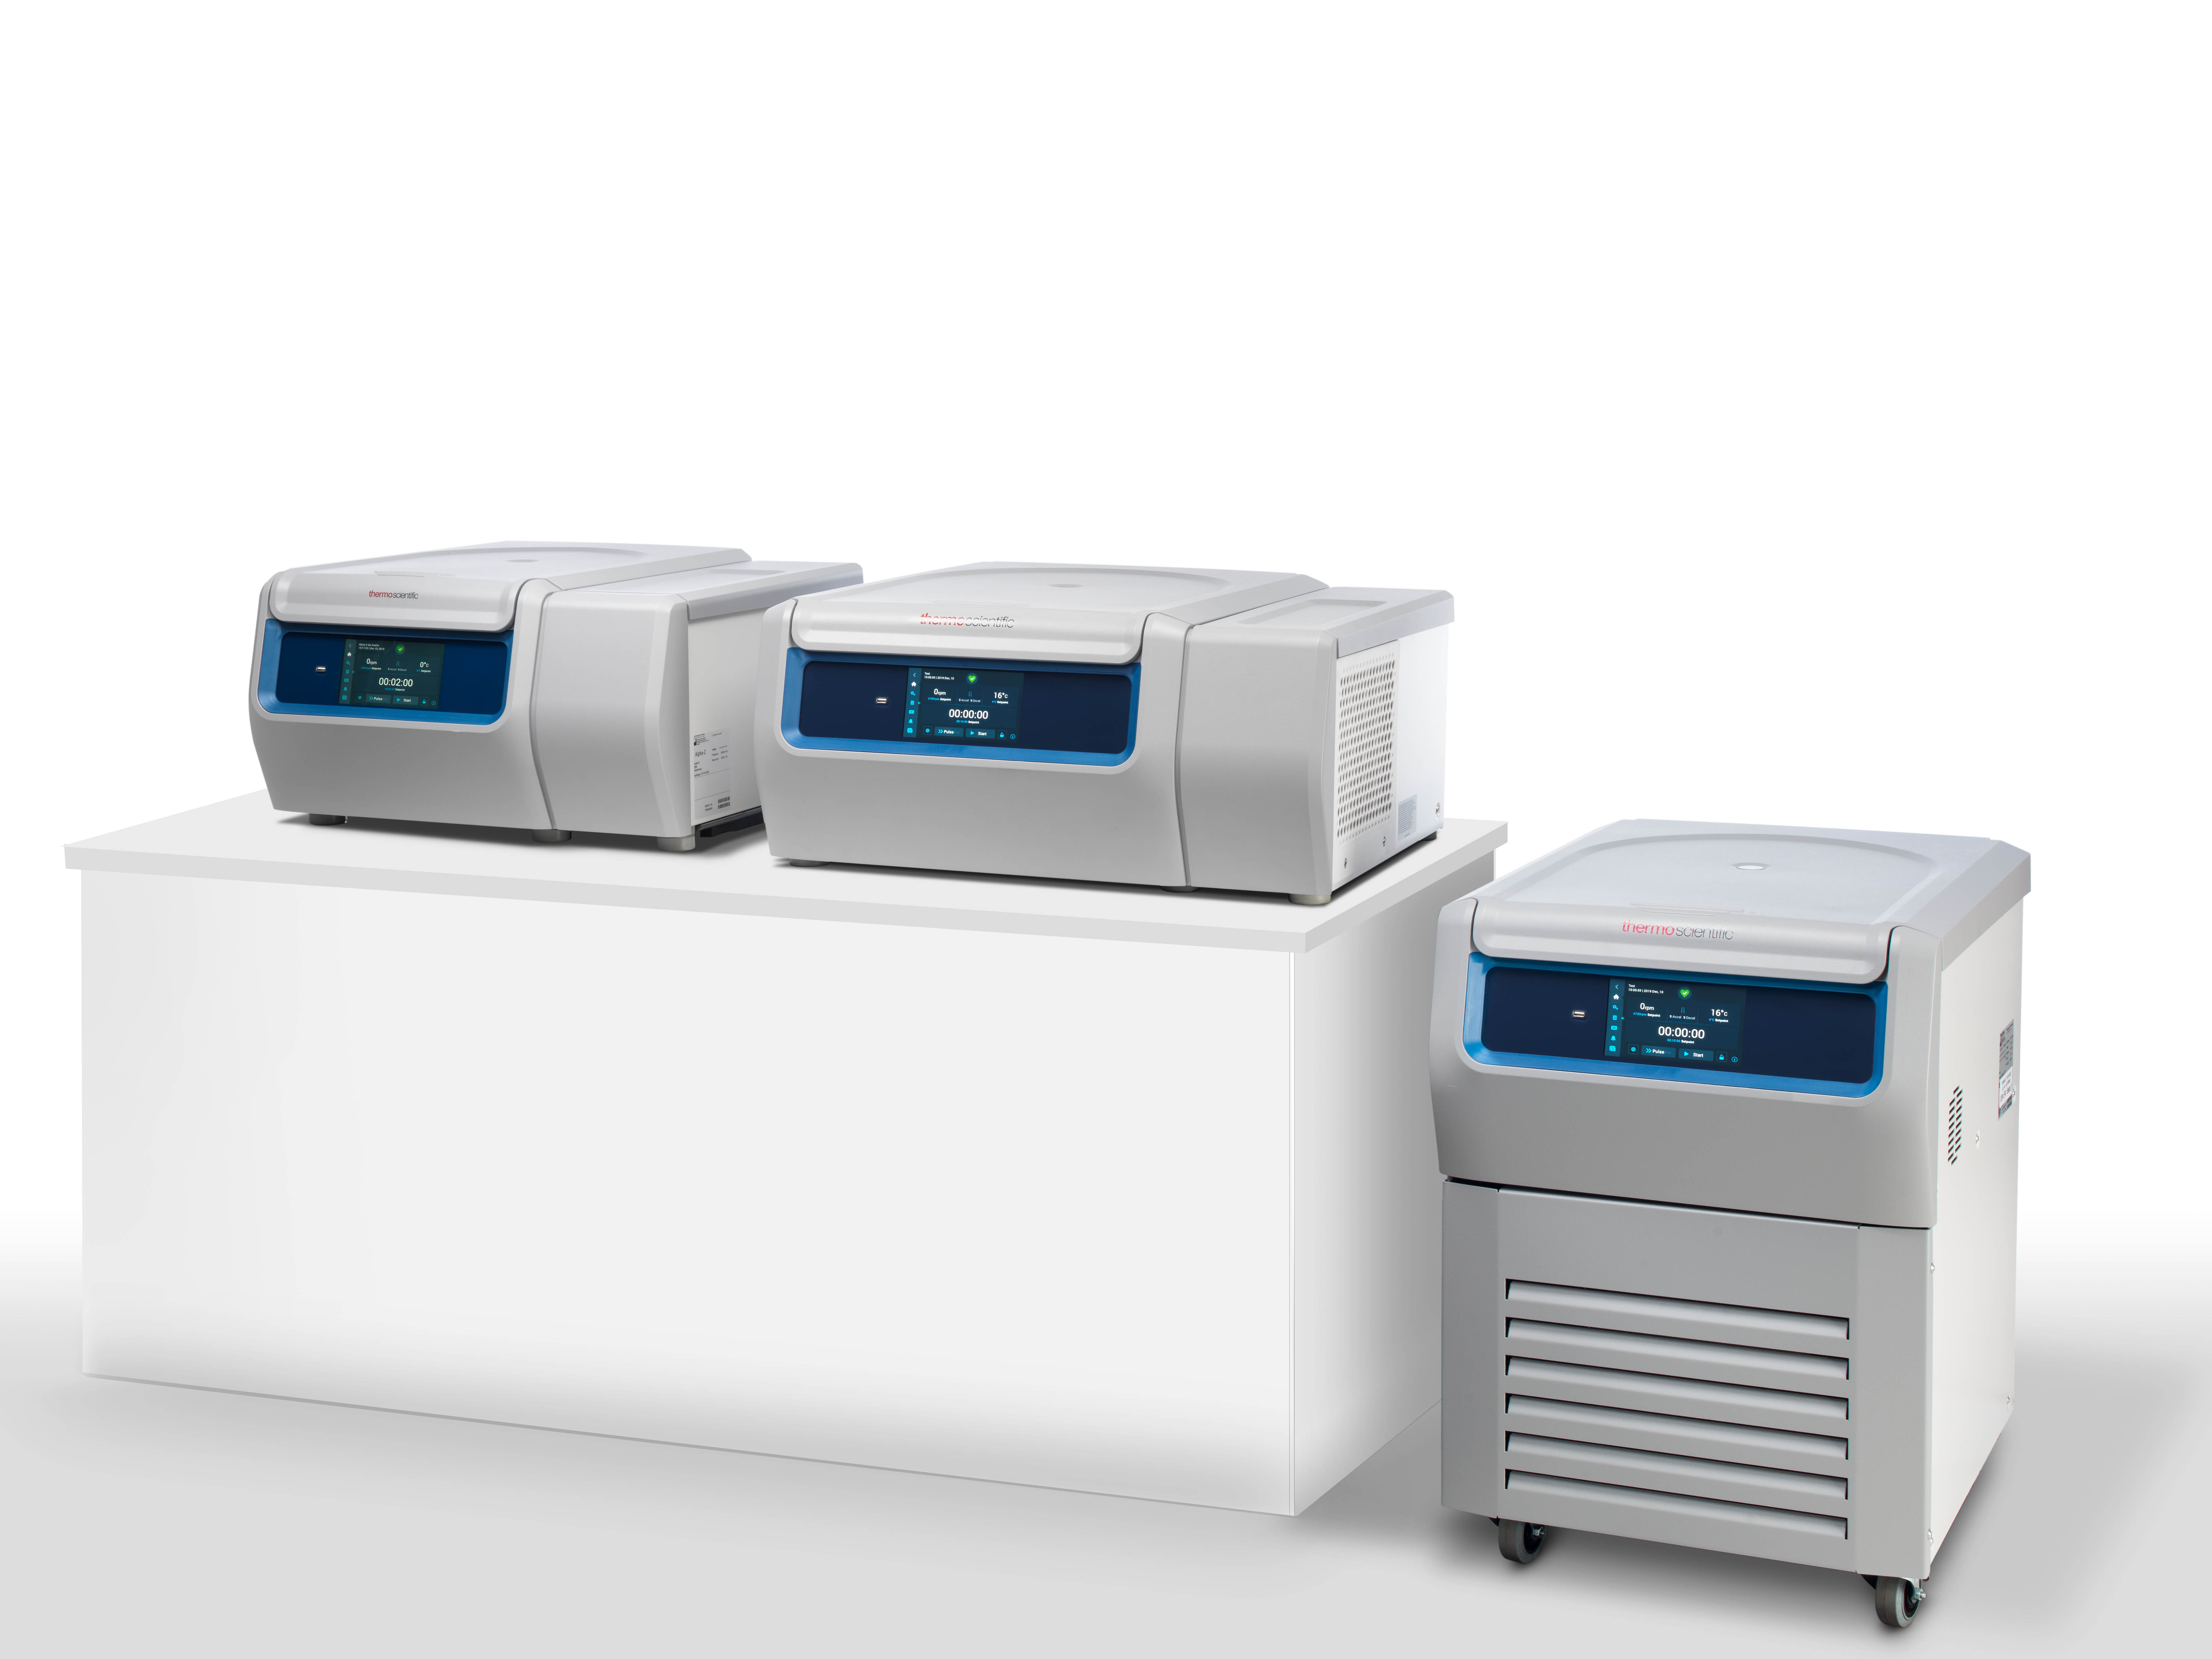 The Thermo Scientific General Purpose Pro Centrifuge Series deliver optimal sample safety, functionality and ergonomics